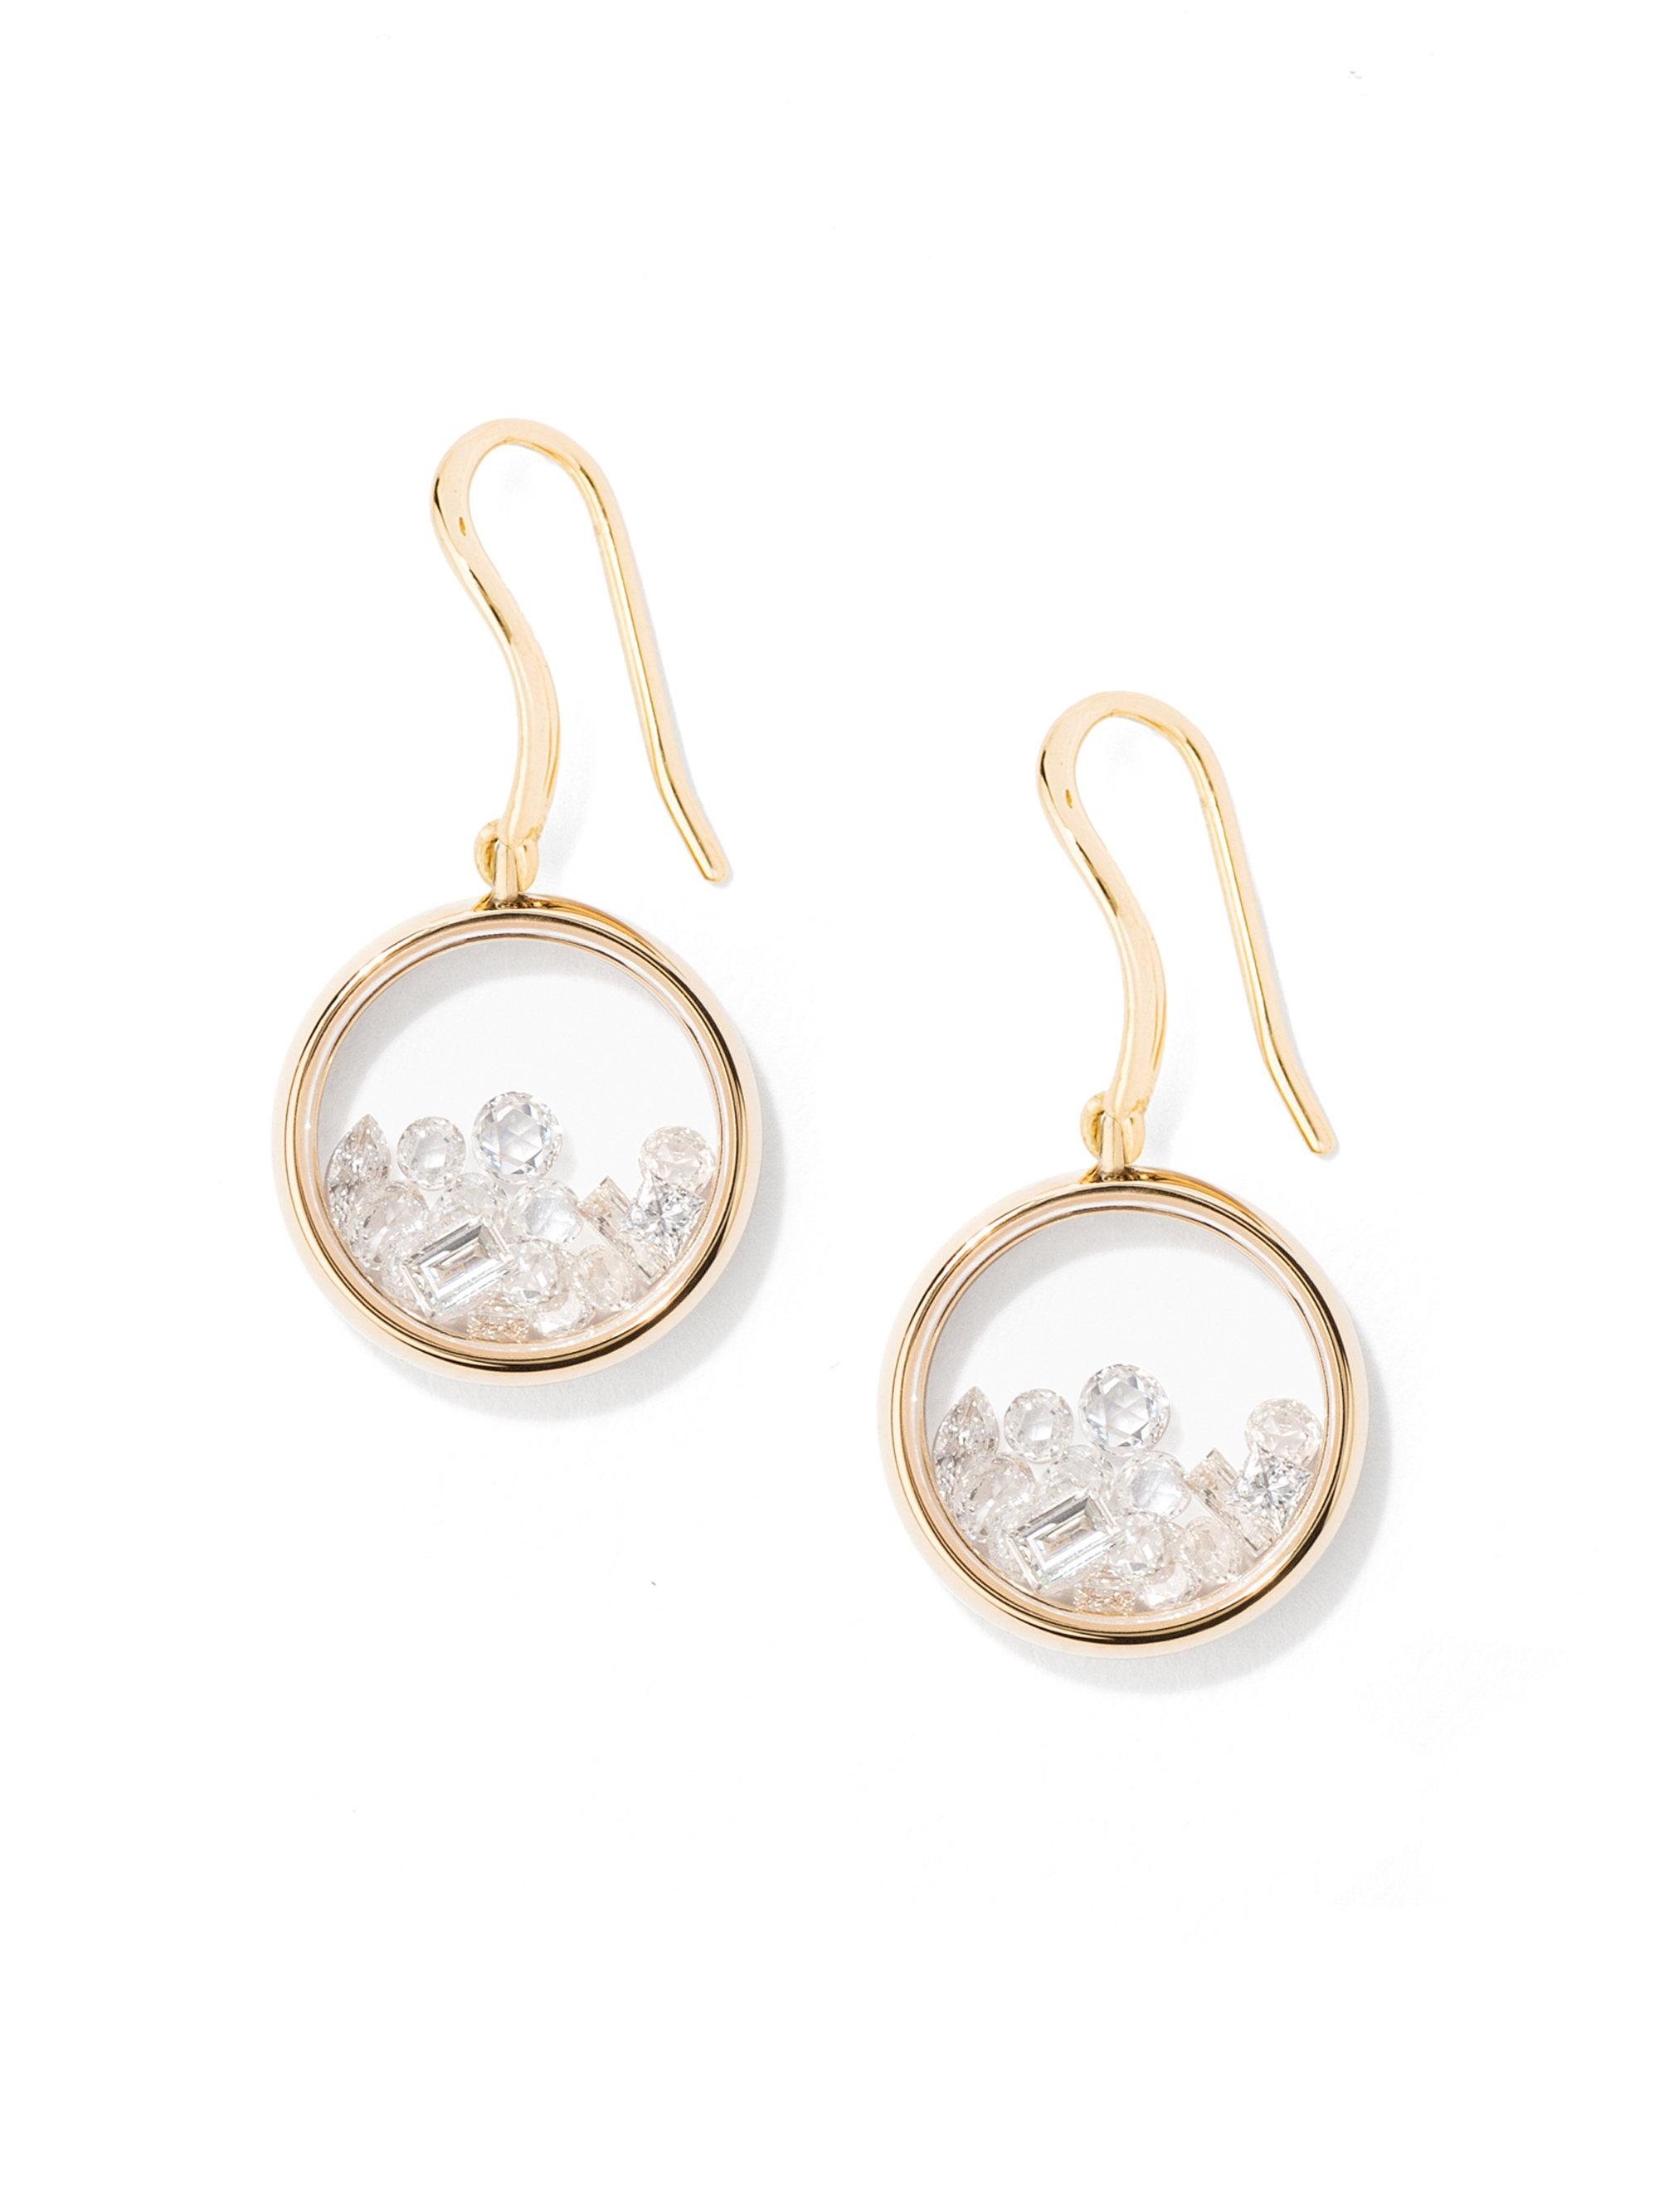 Aurélie Bidermann Chivor 18kt gold & diamond earrings ETXhO2o6j